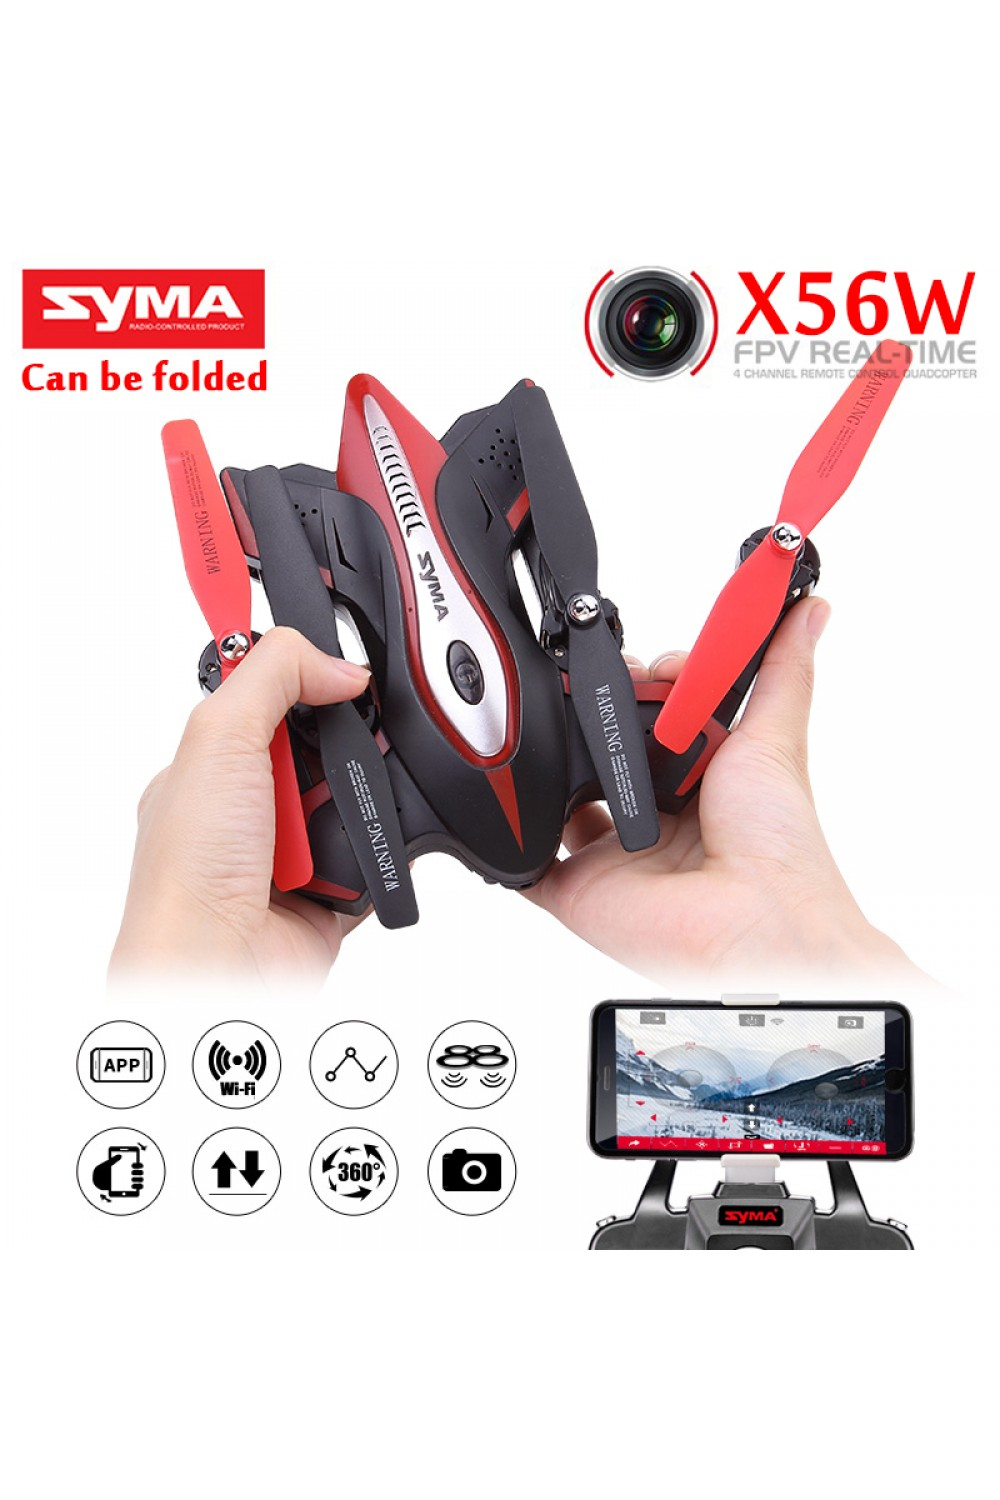 Newest SYMA X56W Fold FPV RC Quadcopter 2.4G 4CH 6-Axis RC Drone with WiFi Camera Headless Mode One Key Land pocket Drone VS X5C